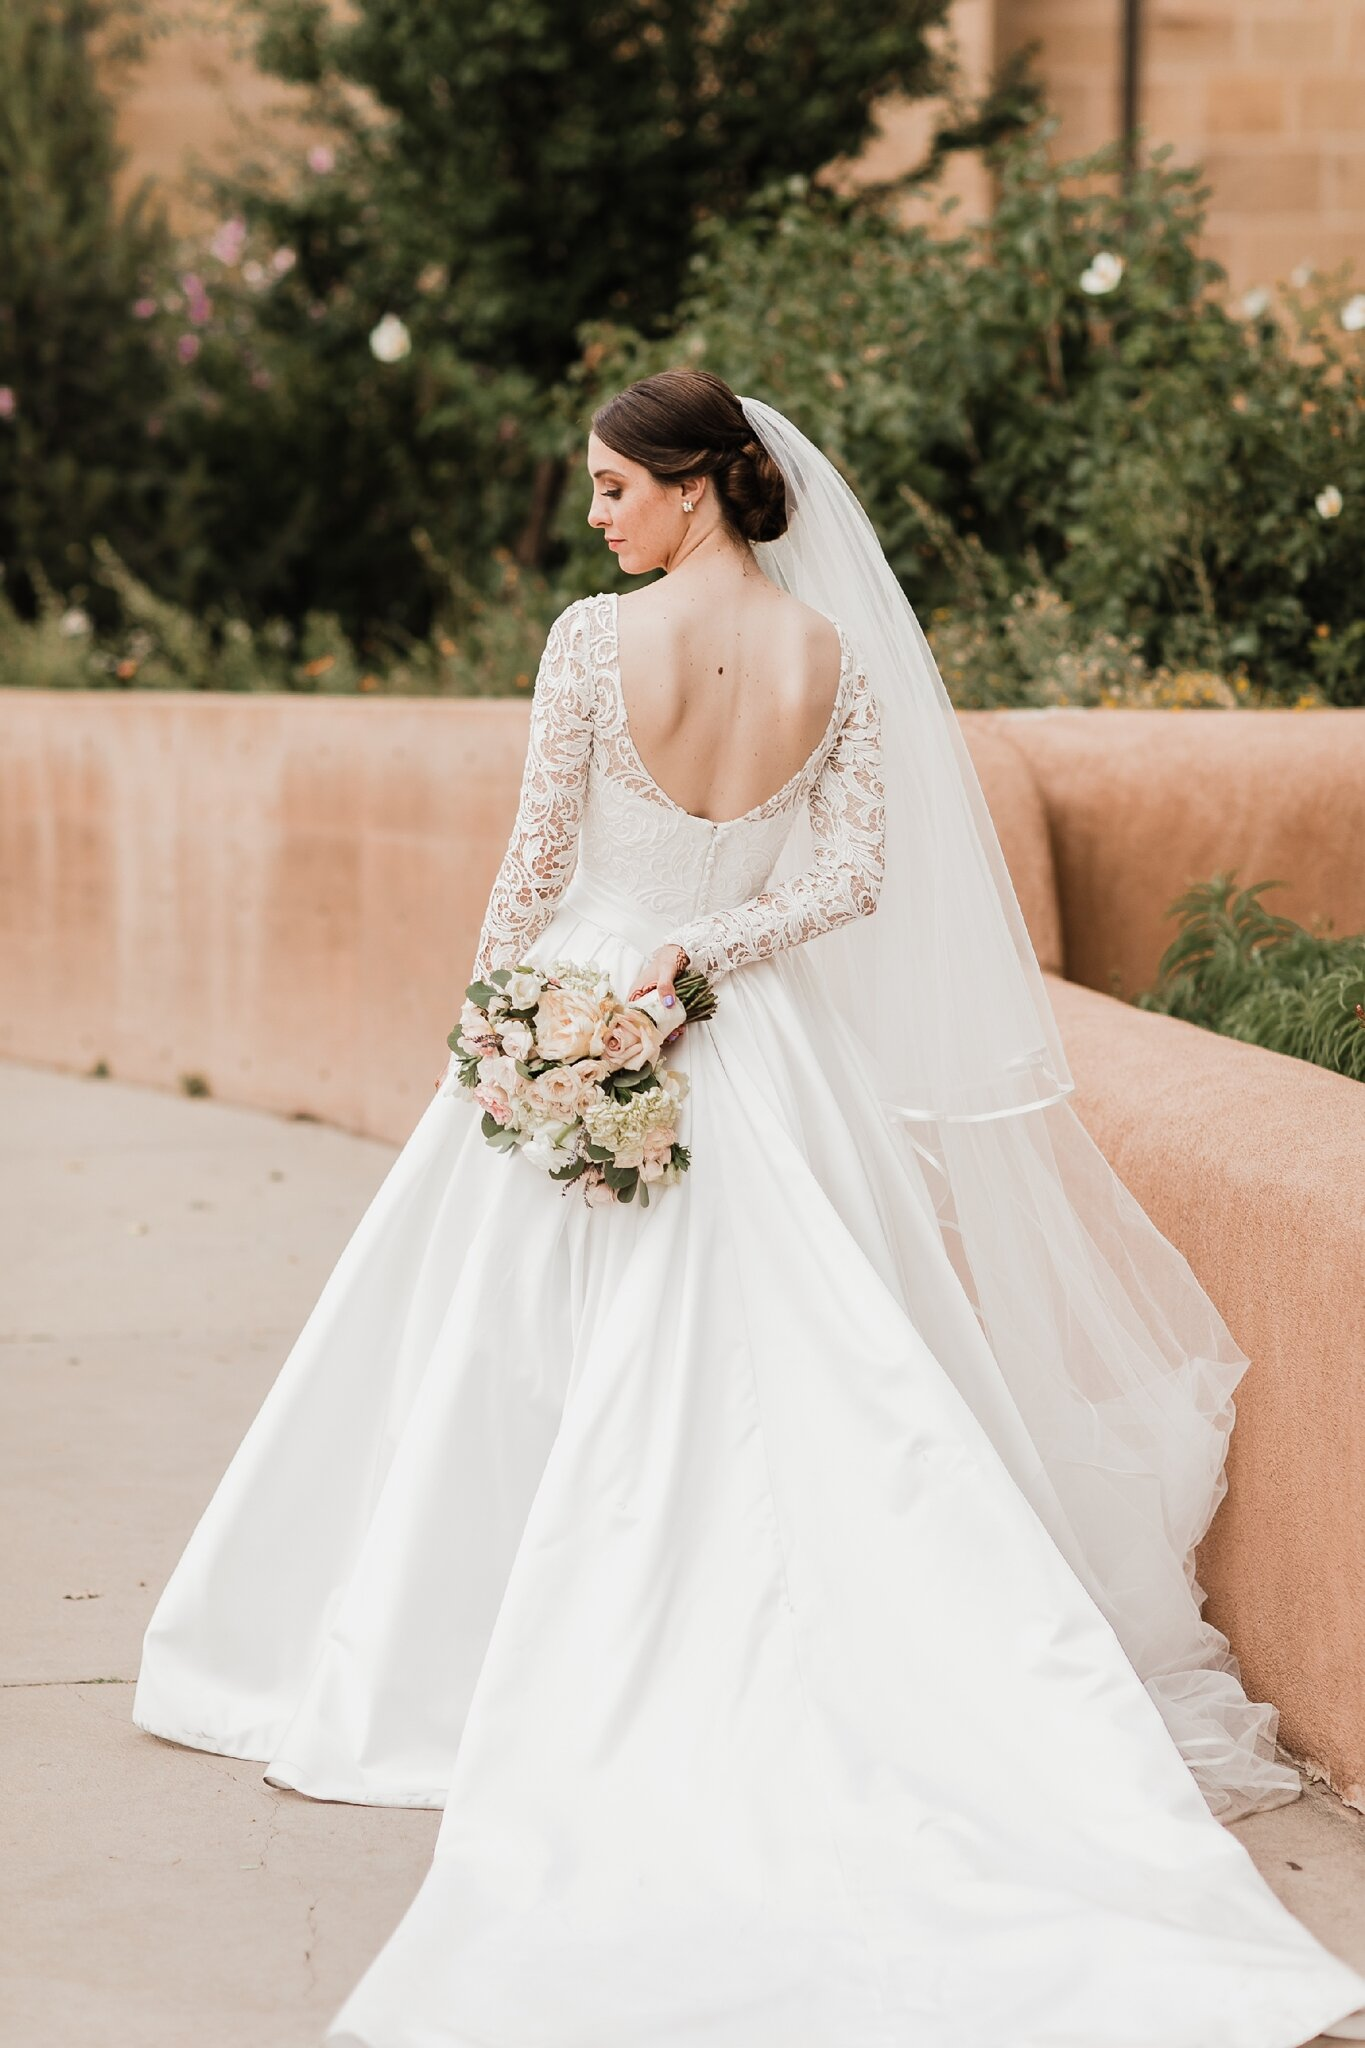 Alicia+lucia+photography+-+albuquerque+wedding+photographer+-+santa+fe+wedding+photography+-+new+mexico+wedding+photographer+-+new+mexico+wedding+-+hindu+wedding+-+catholic+wedding+-+multicultural+wedding+-+santa+fe+wedding_0090.jpg